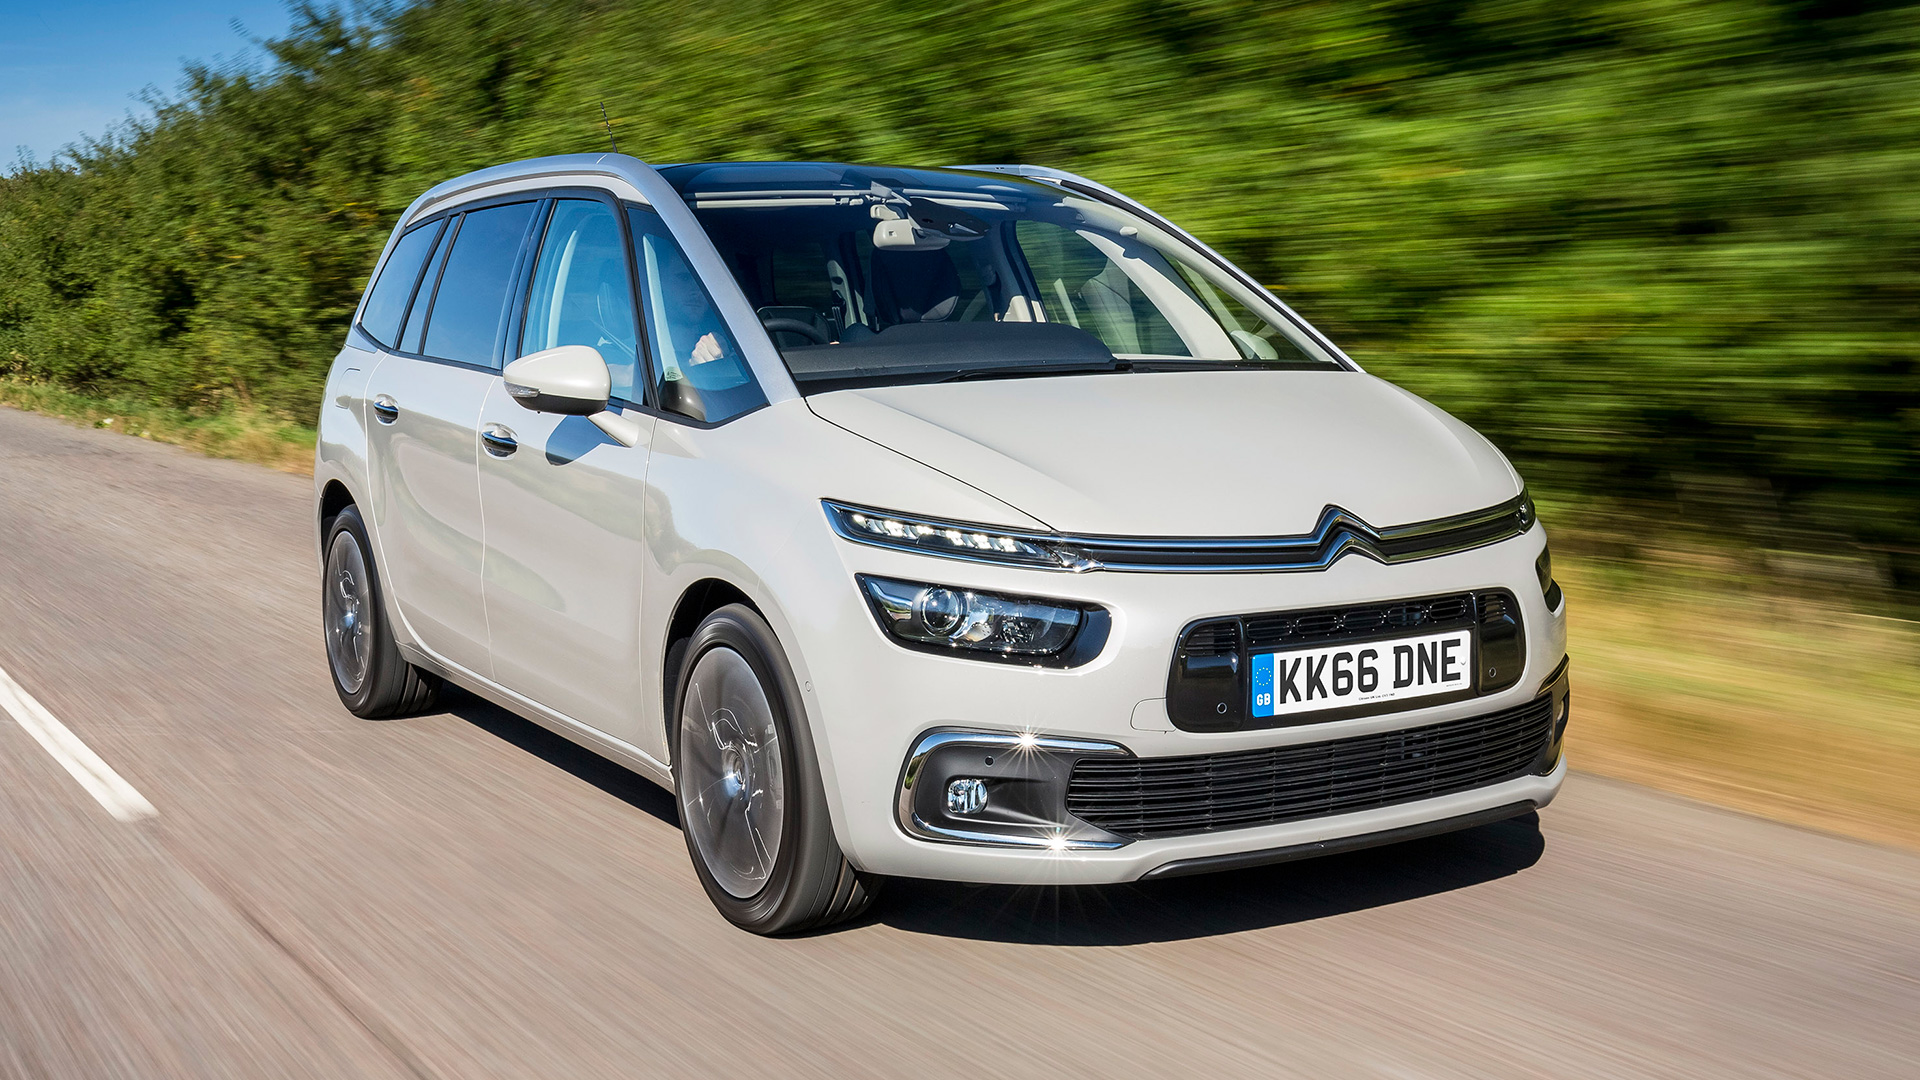 citroen grand c4 picasso first drive review auto trader uk. Black Bedroom Furniture Sets. Home Design Ideas